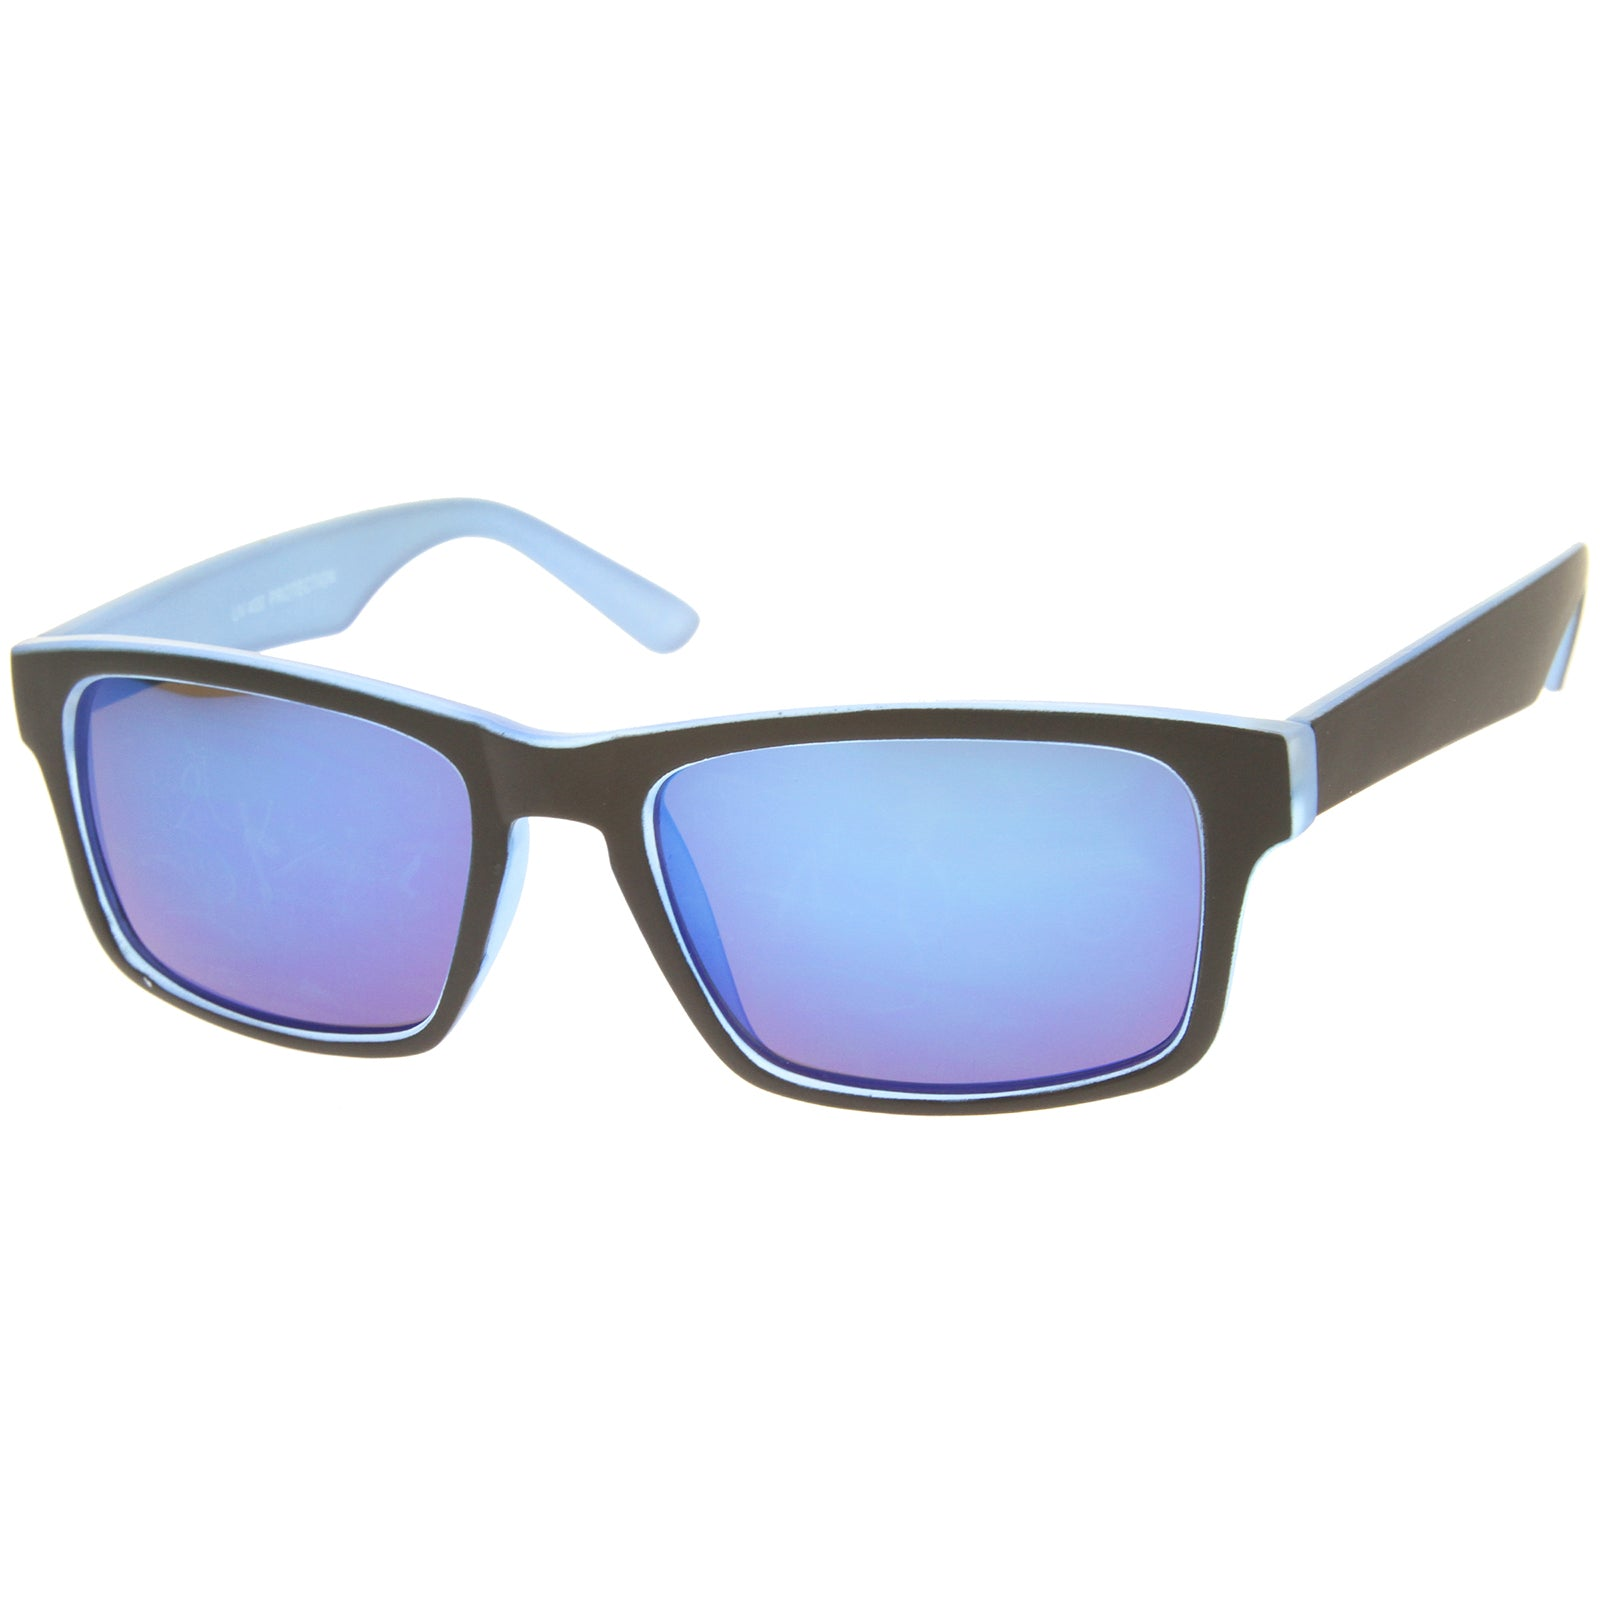 Mens Sport Sunglasses With UV400 Protected Mirrored Lens - sunglass.la - 6